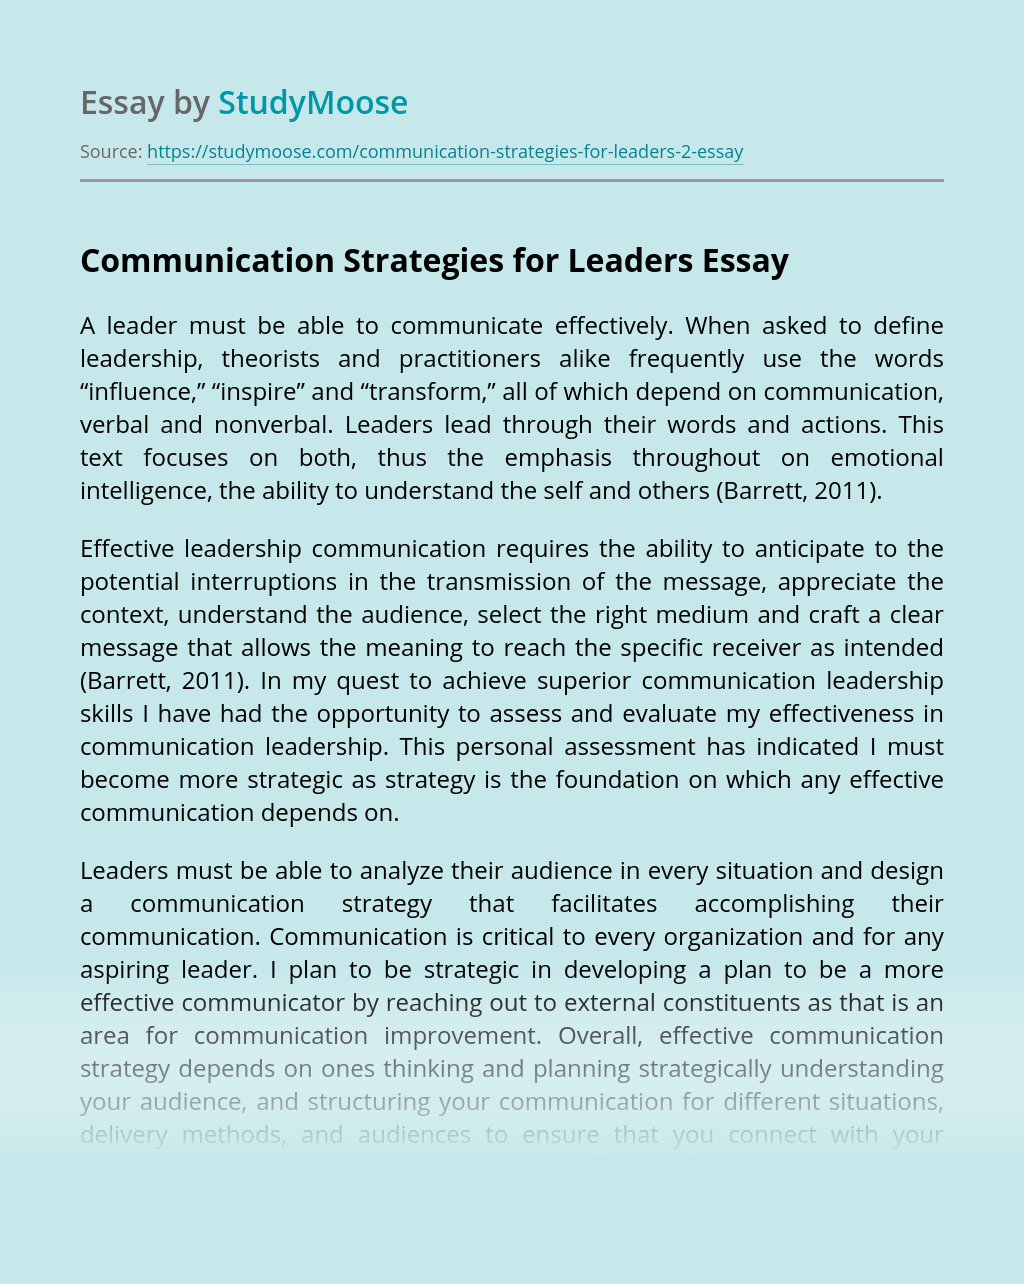 Communication Strategies for Leaders